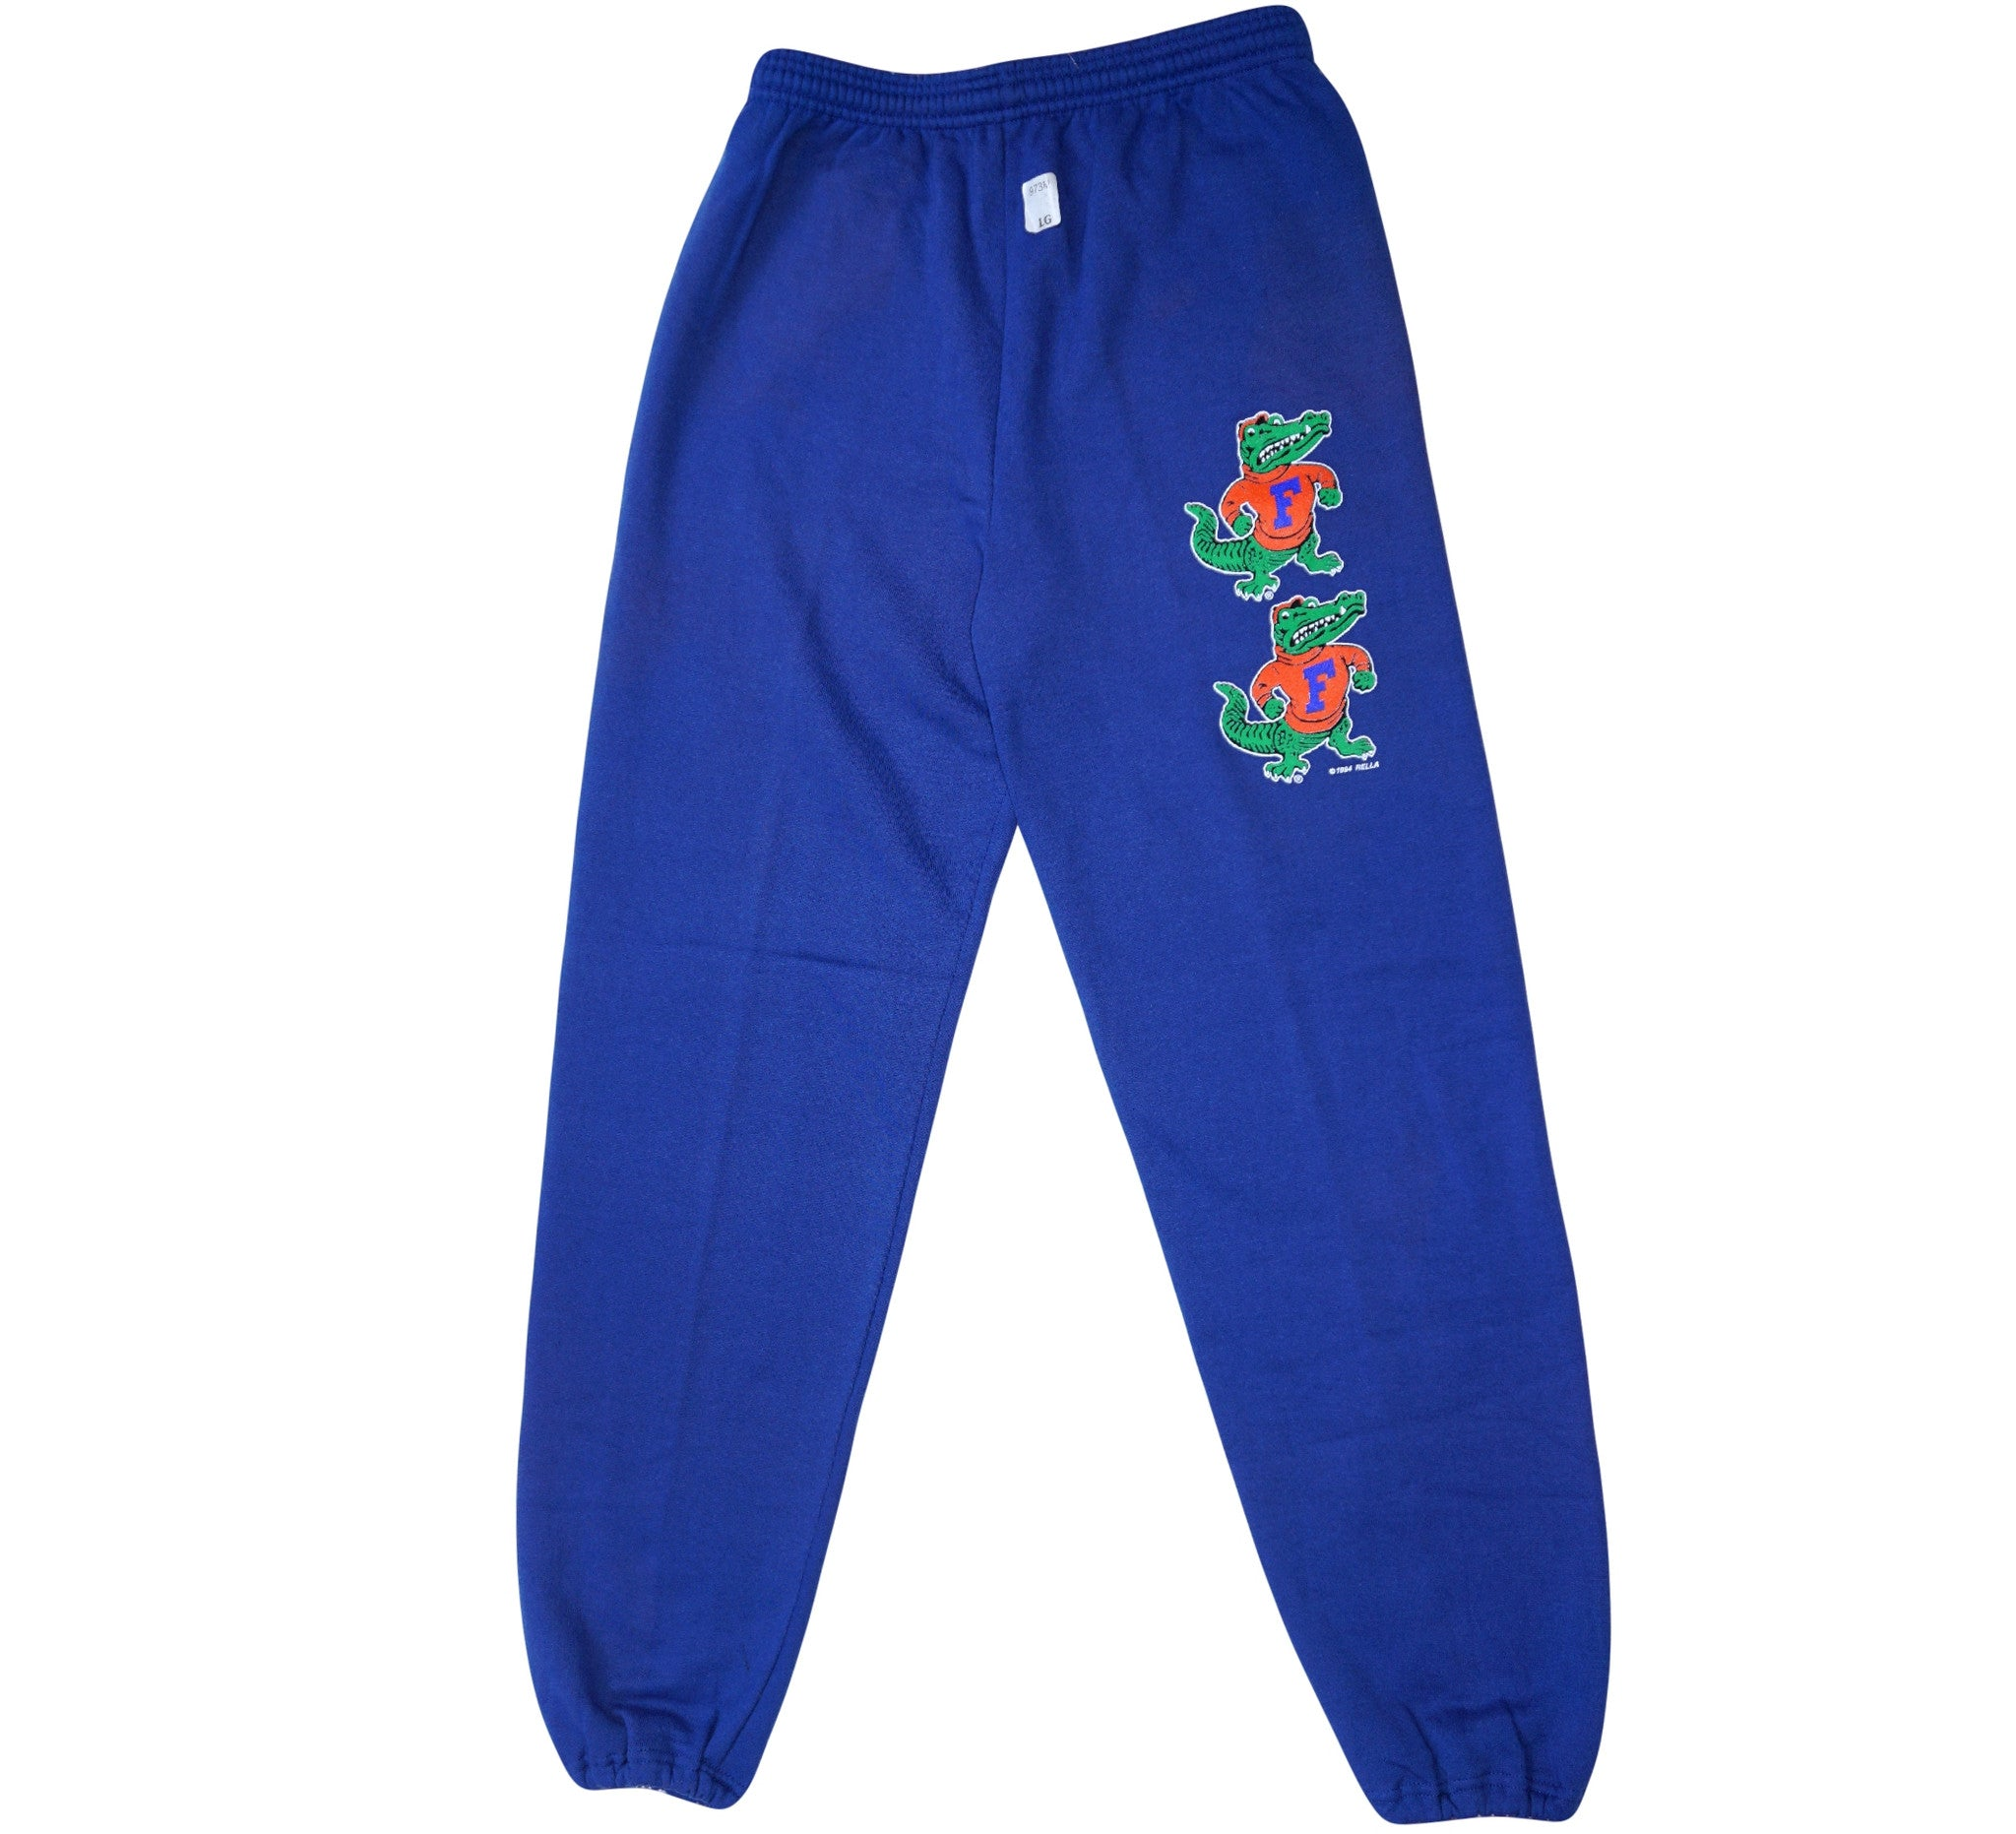 Gators Vintage 90's Sweatpants - And Still